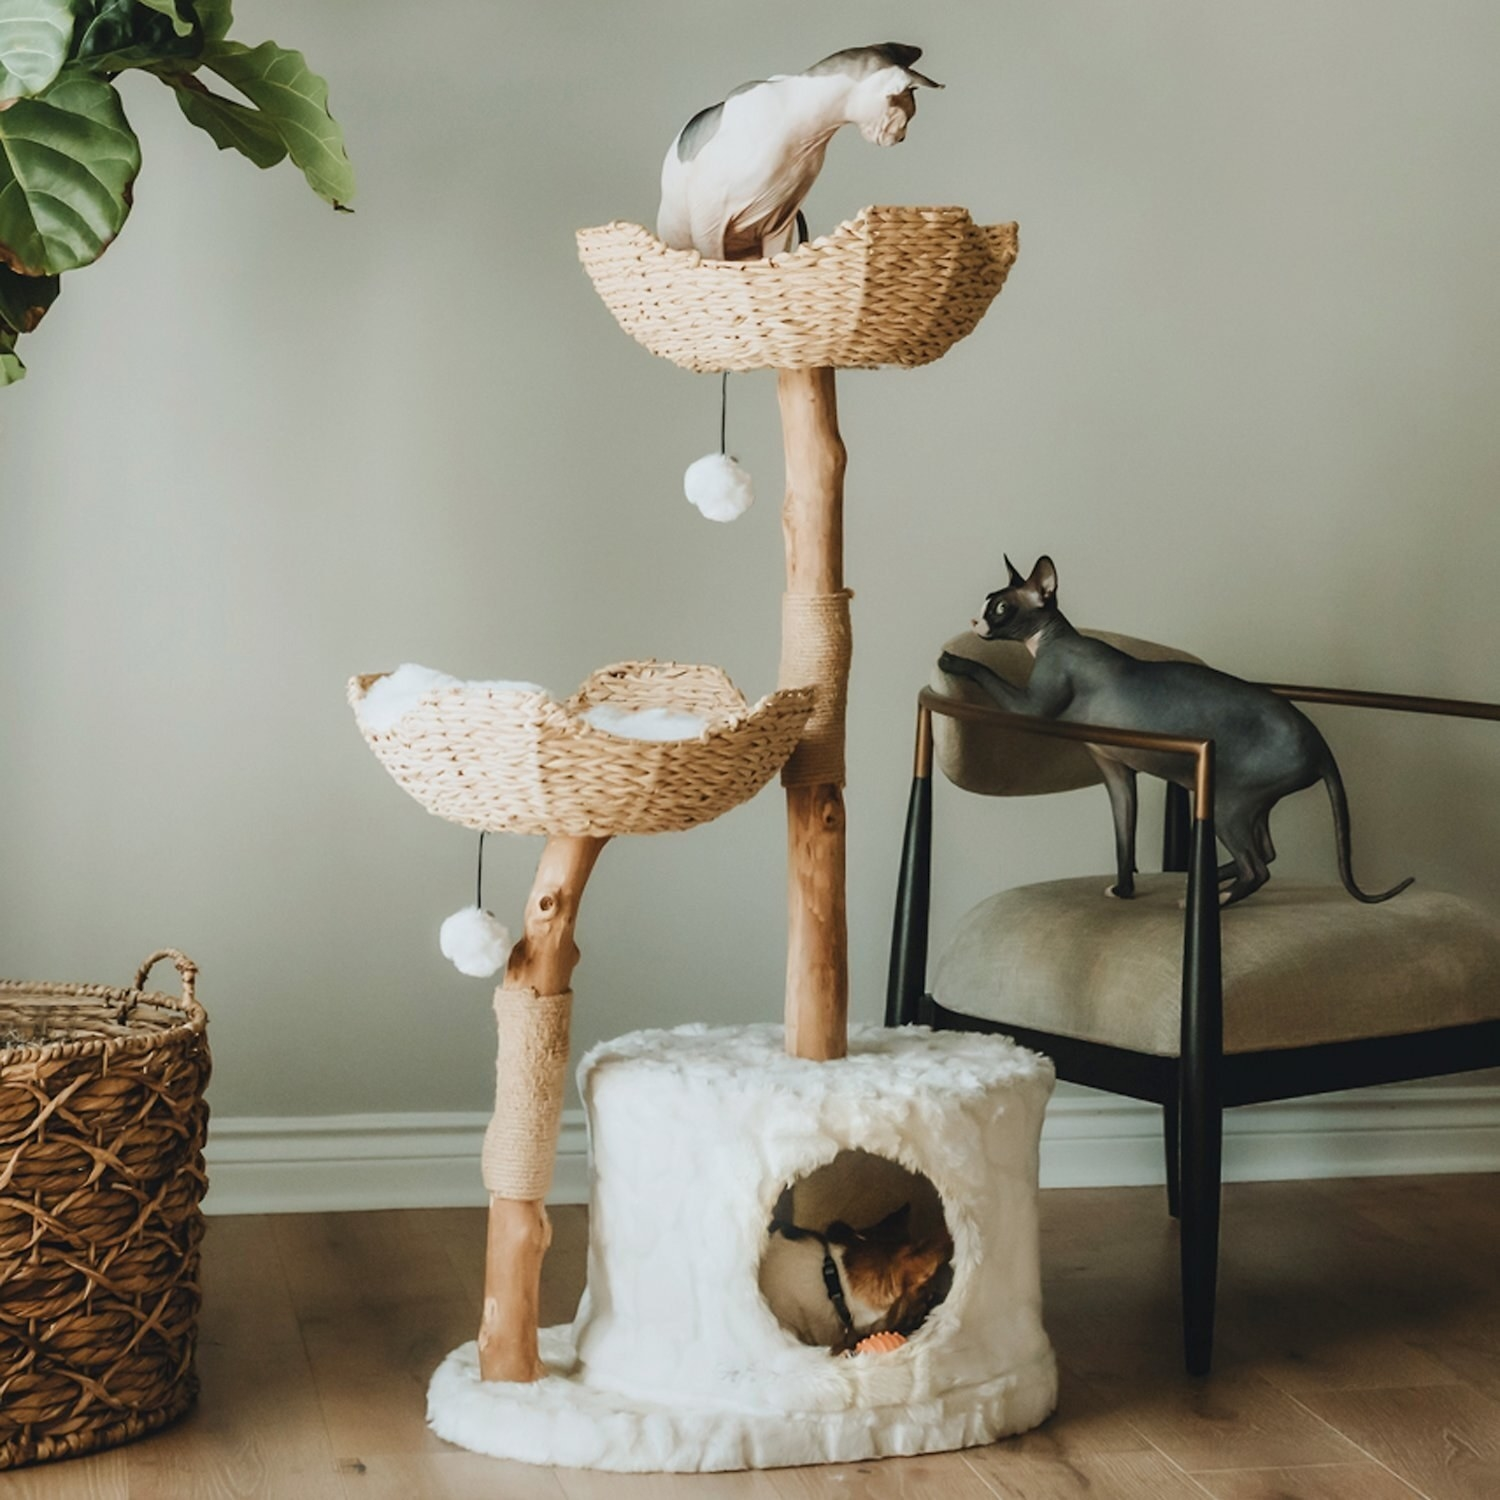 three cats playing in a cat condo. there are two rattan baskets, a fuzzy hiding space, natural log stands covered in scratch-able material, and two hanging pom pom toys